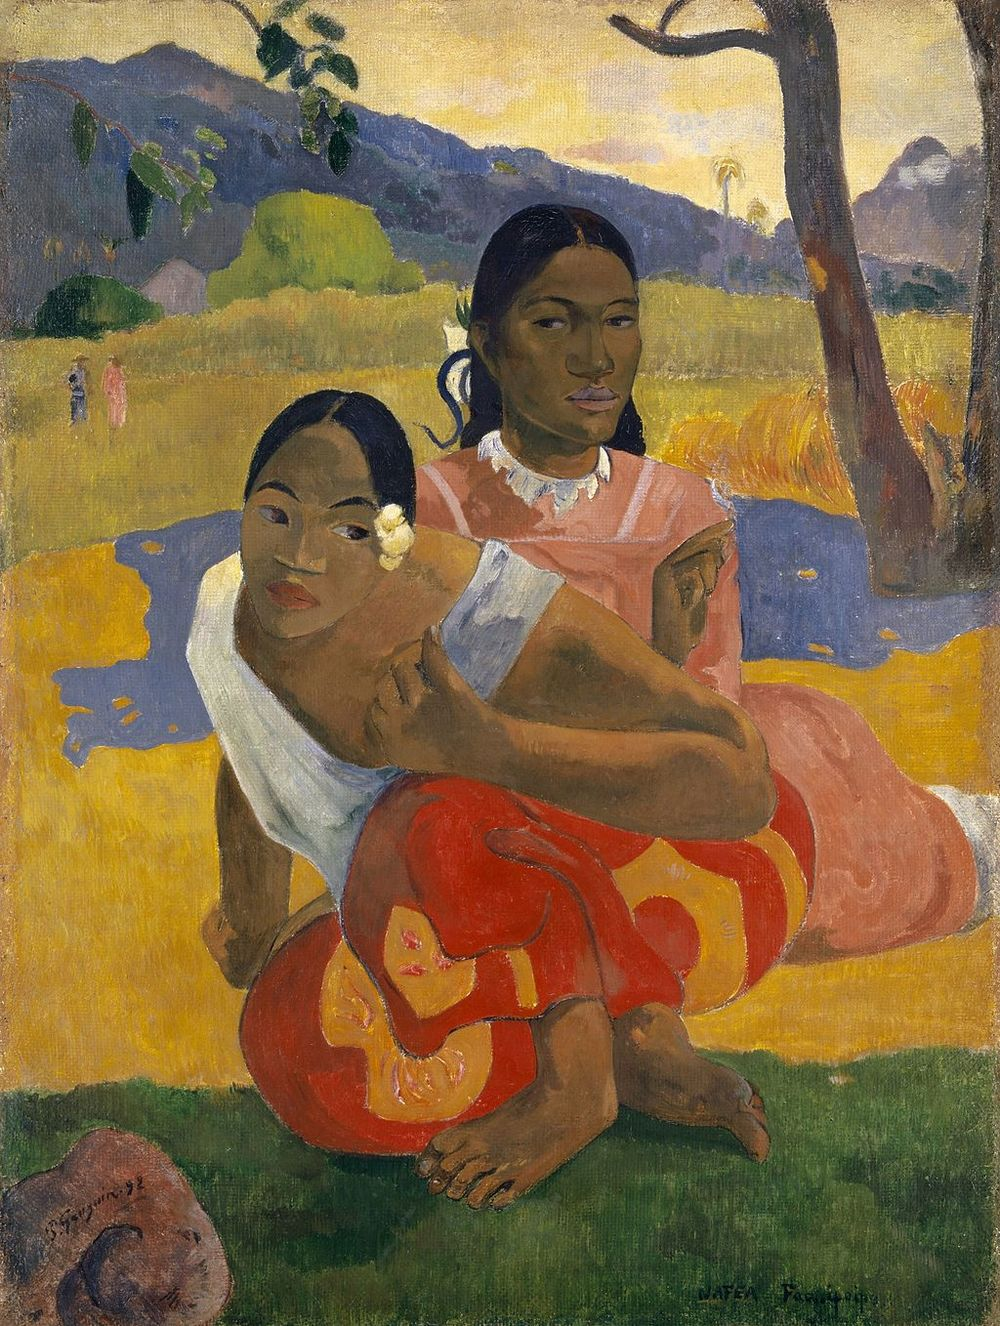 Paul Gauguin, Nafea Faa Ipoipo (When Will You Marry?), 1892, Private Collection.